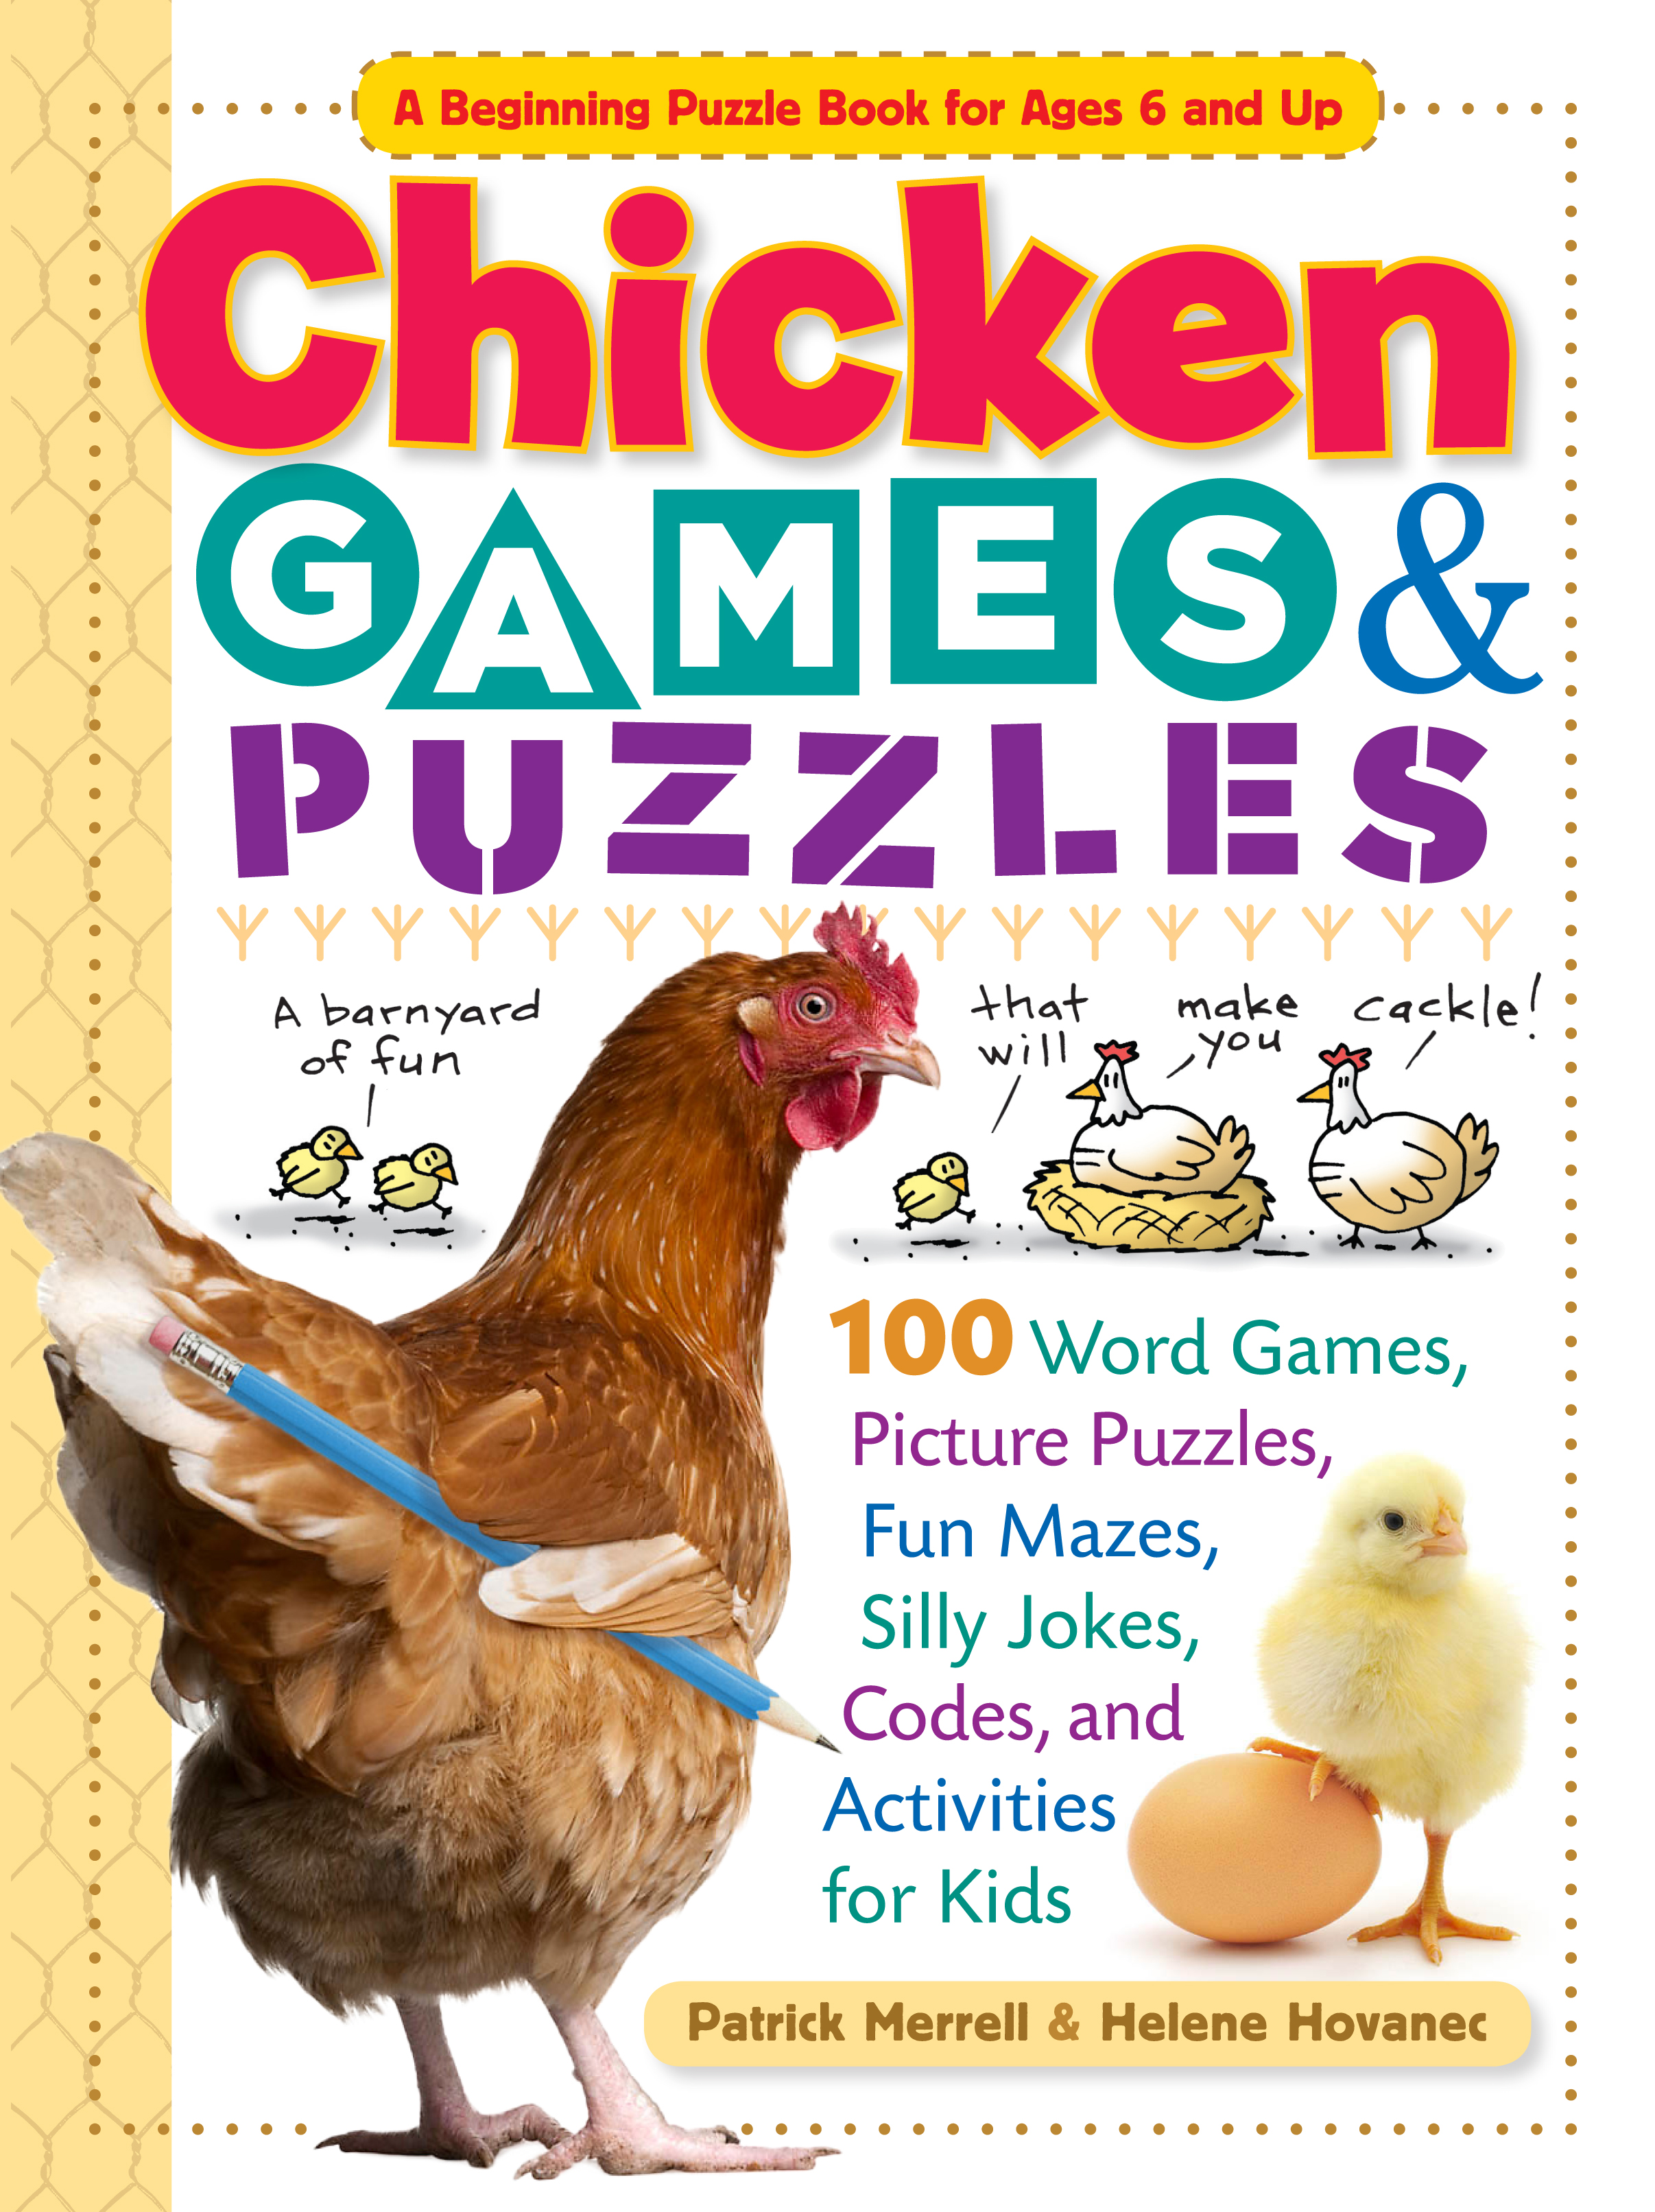 Chicken Games & Puzzles 100 Word Games, Picture Puzzles, Fun Mazes, Silly Jokes, Codes, and Activities for Kids - Helene Hovanec